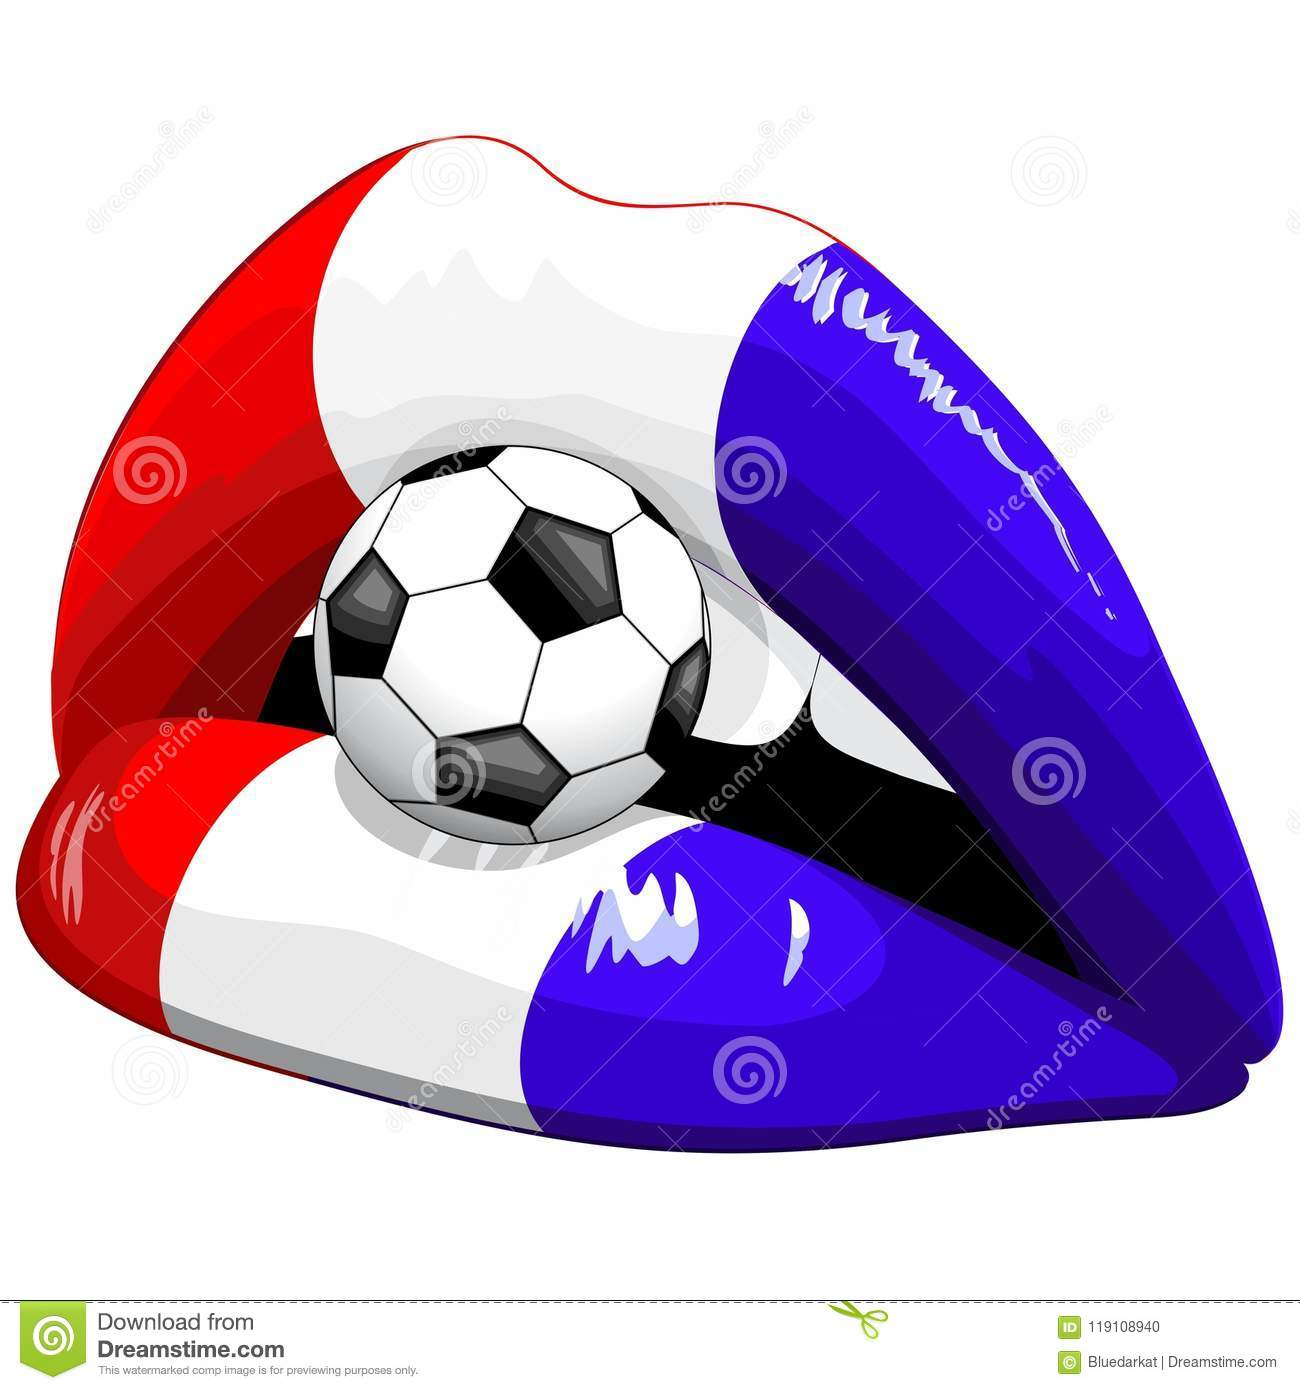 Download France Flag Lipstick Soccer Supporters Stock Vector - Illustration of country, national: 119108940